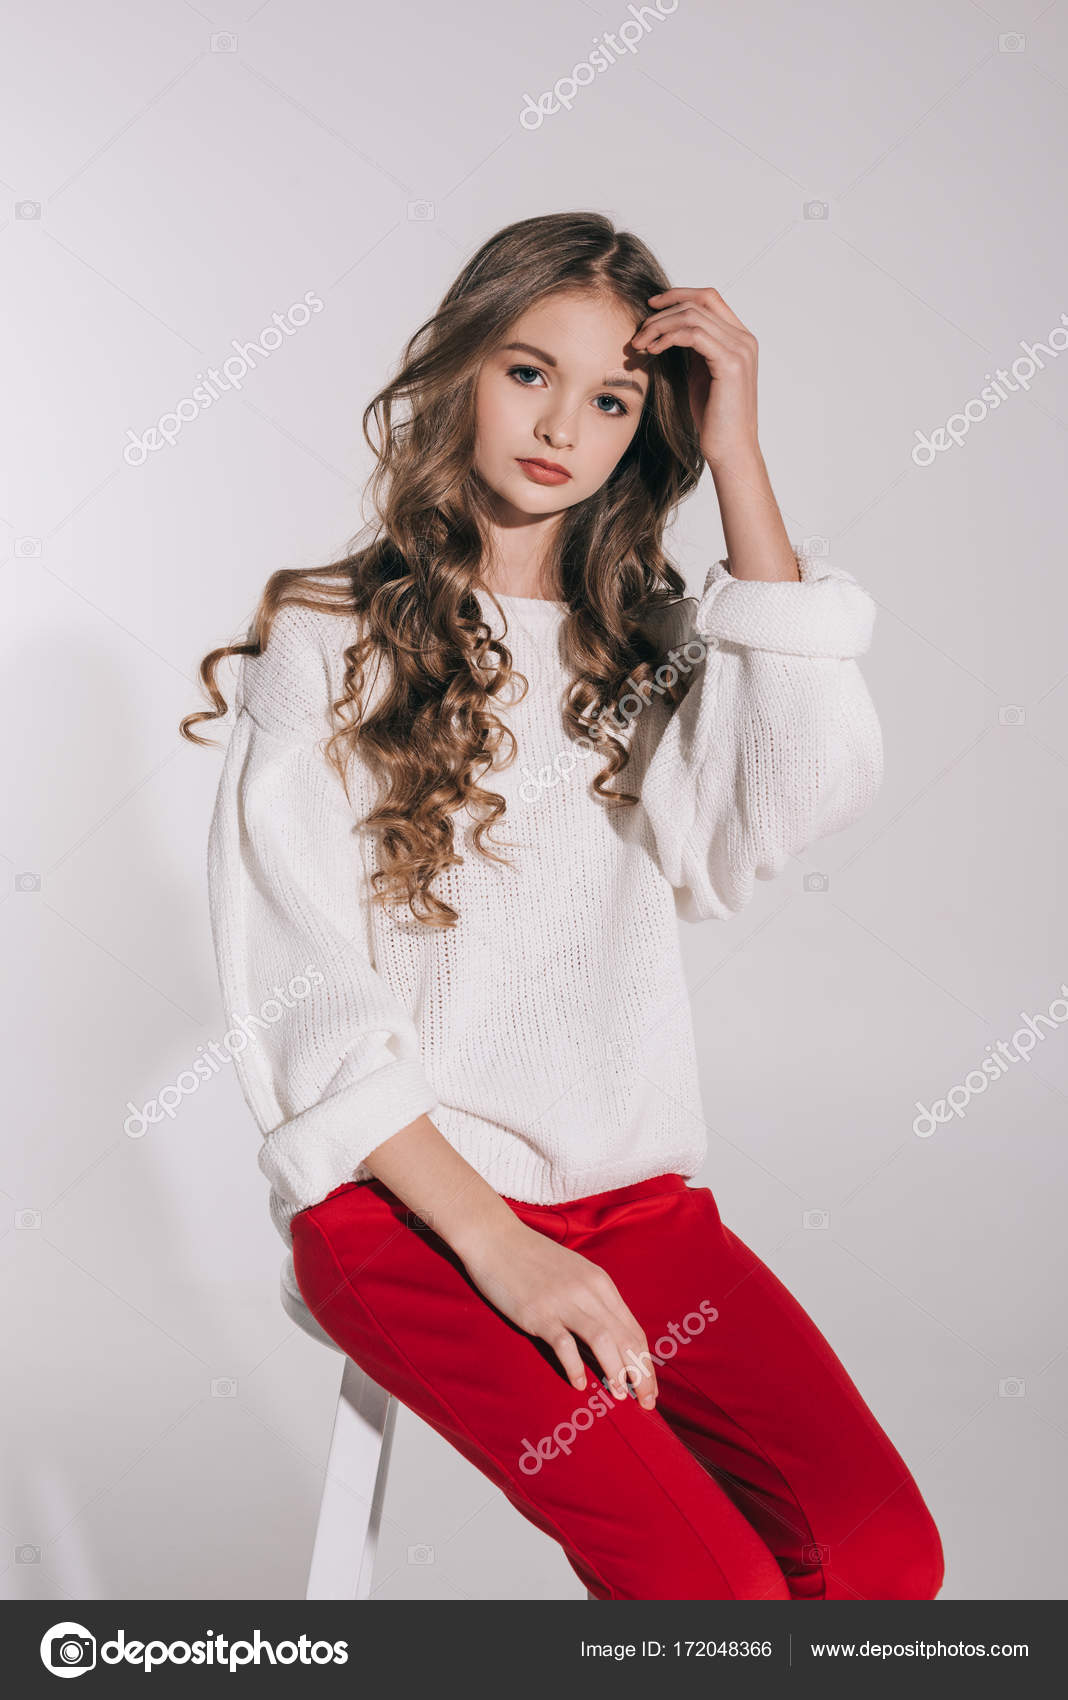 Teen Girls Picture photo 5